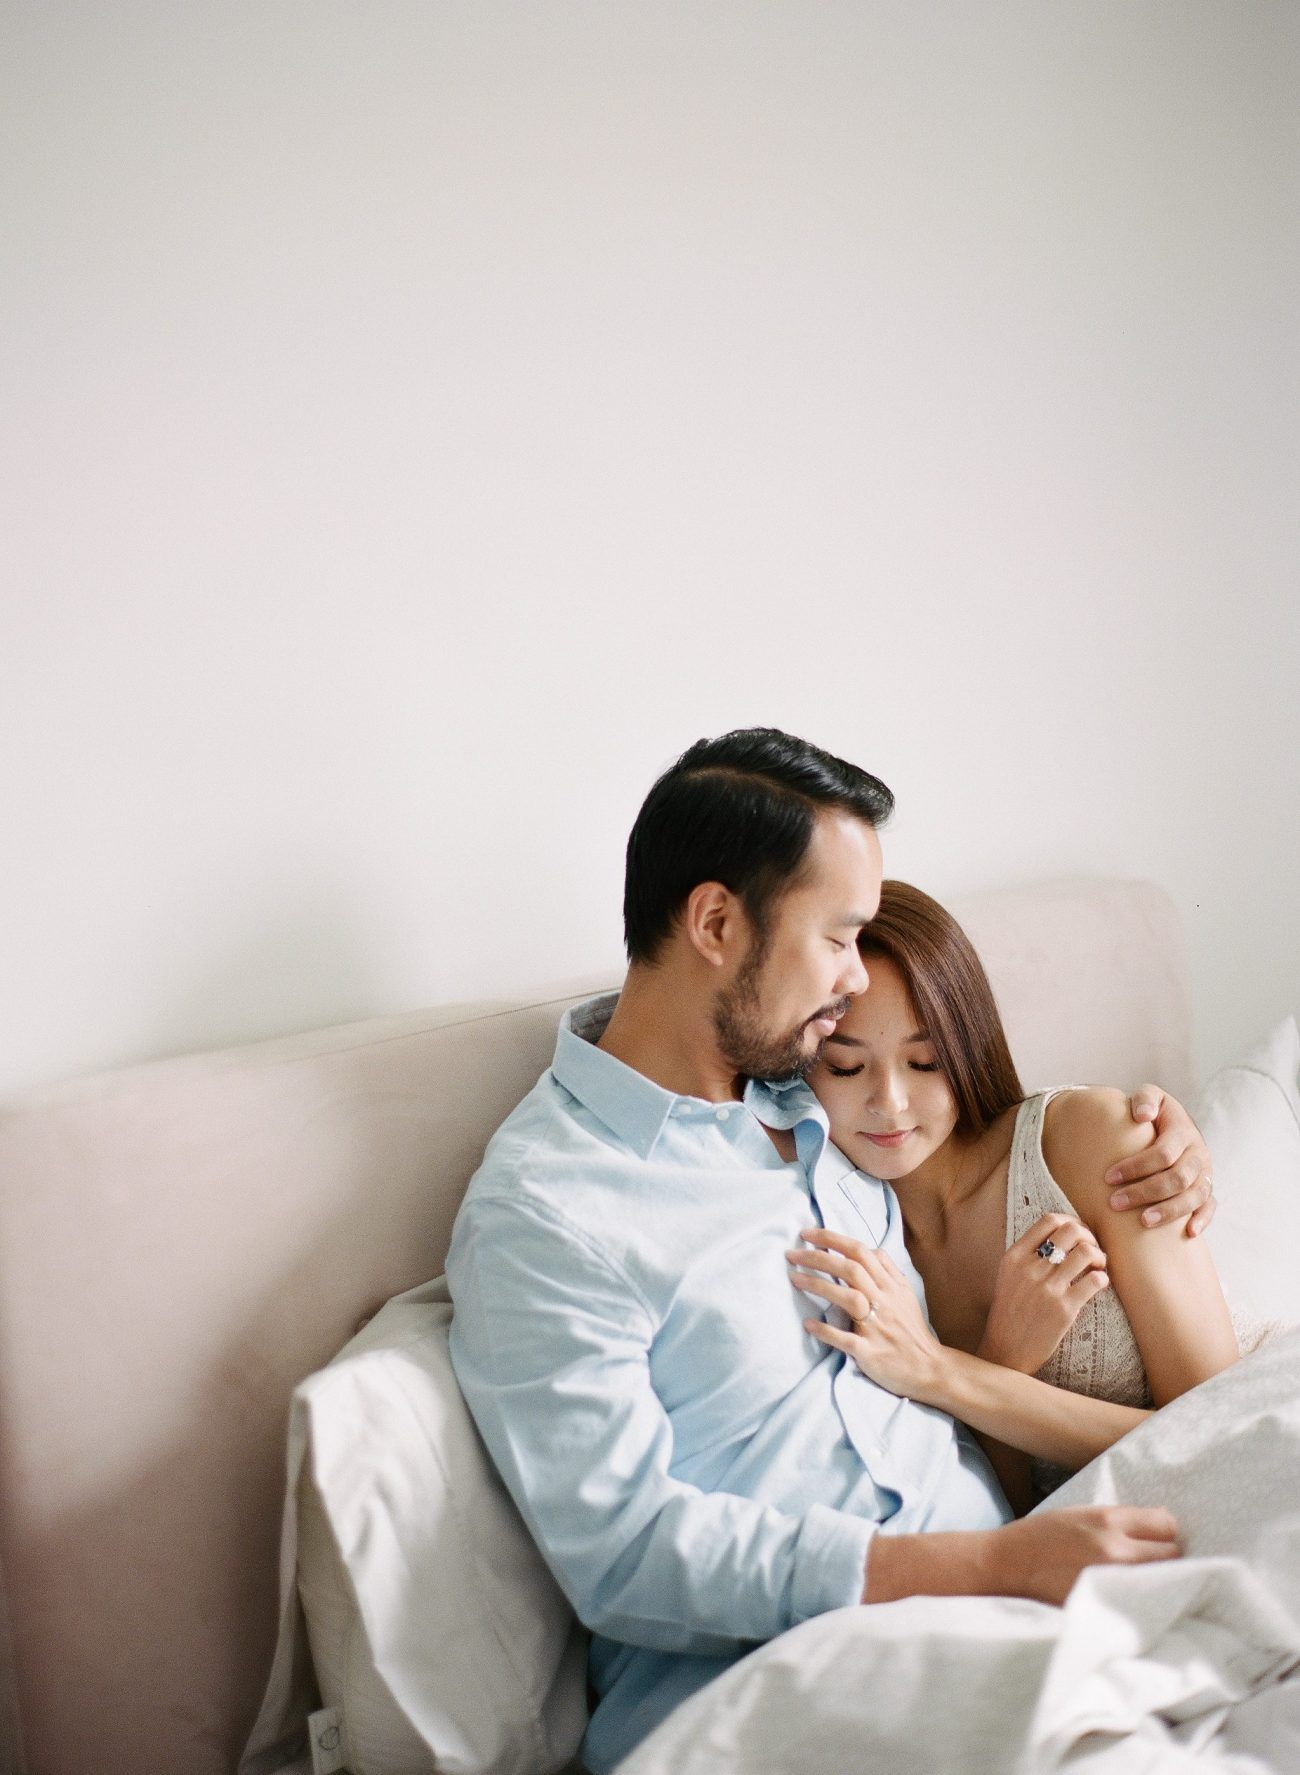 Jenny-Liu-Photography-Intimate At-Home-Couple-Session-13